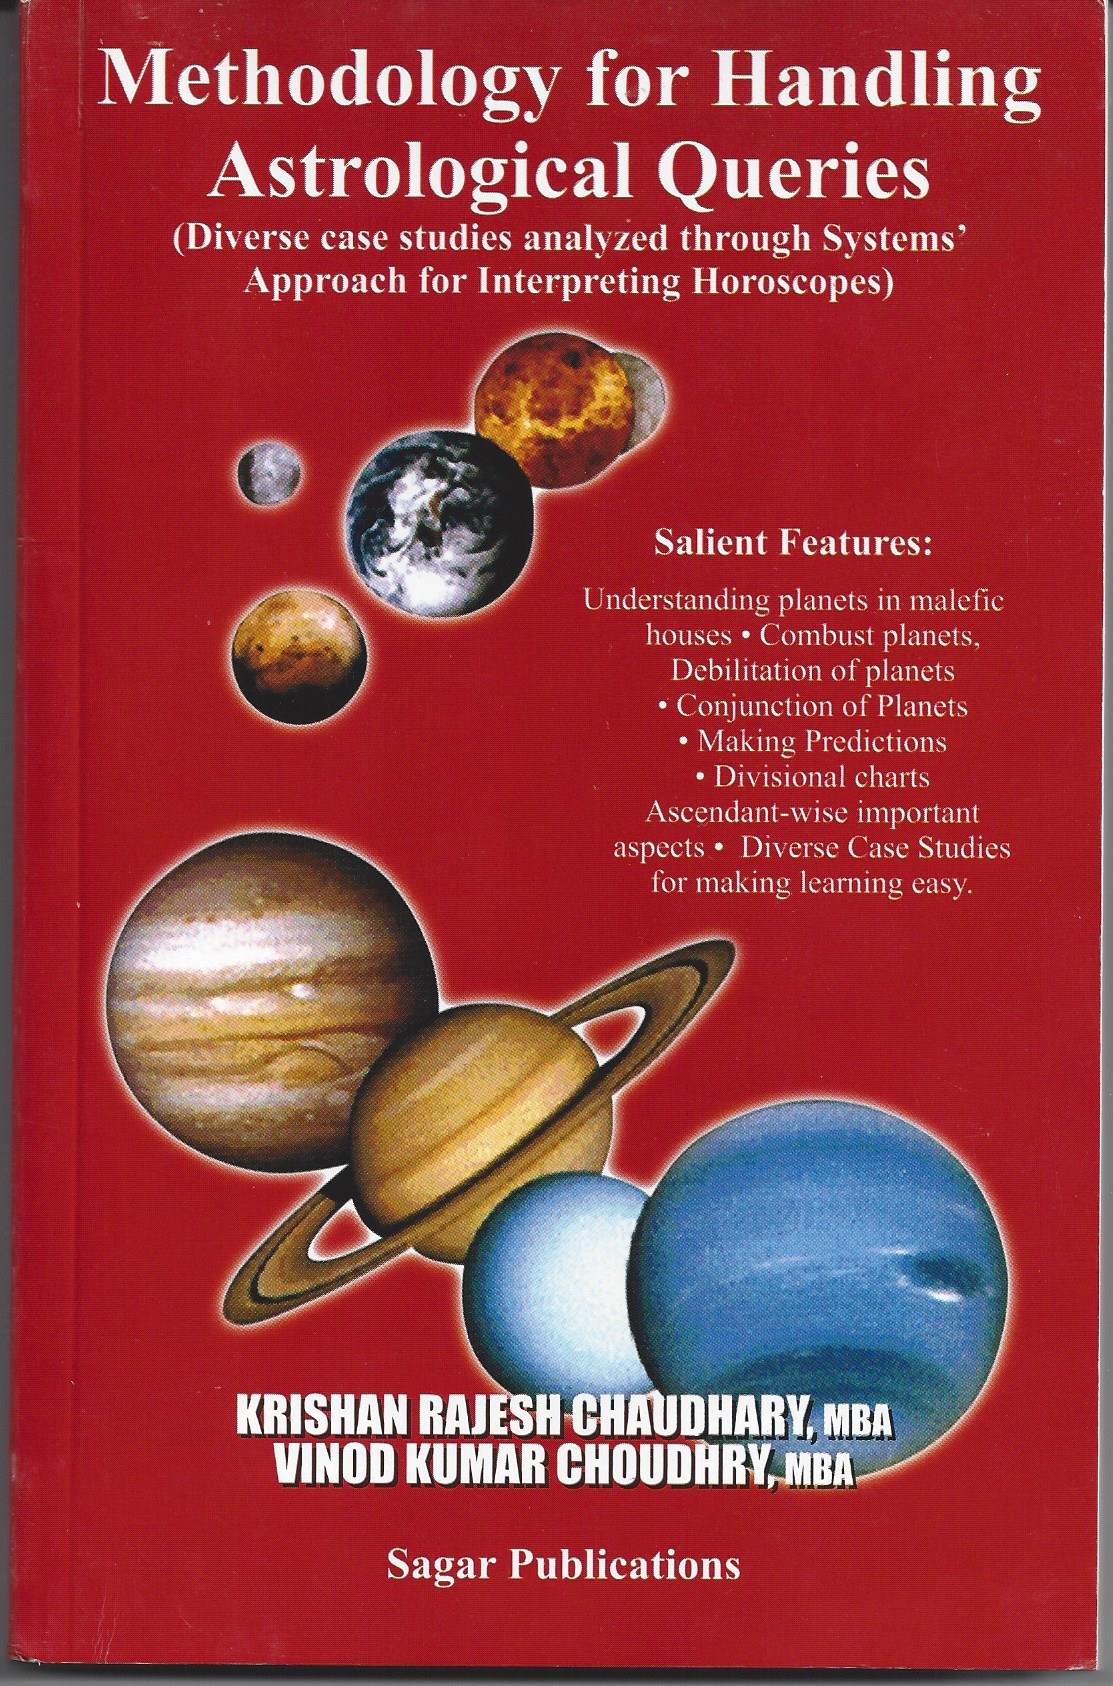 Methodology for Handling Astrological Queries (Systems' Approach for  Interpreting Horoscopes)